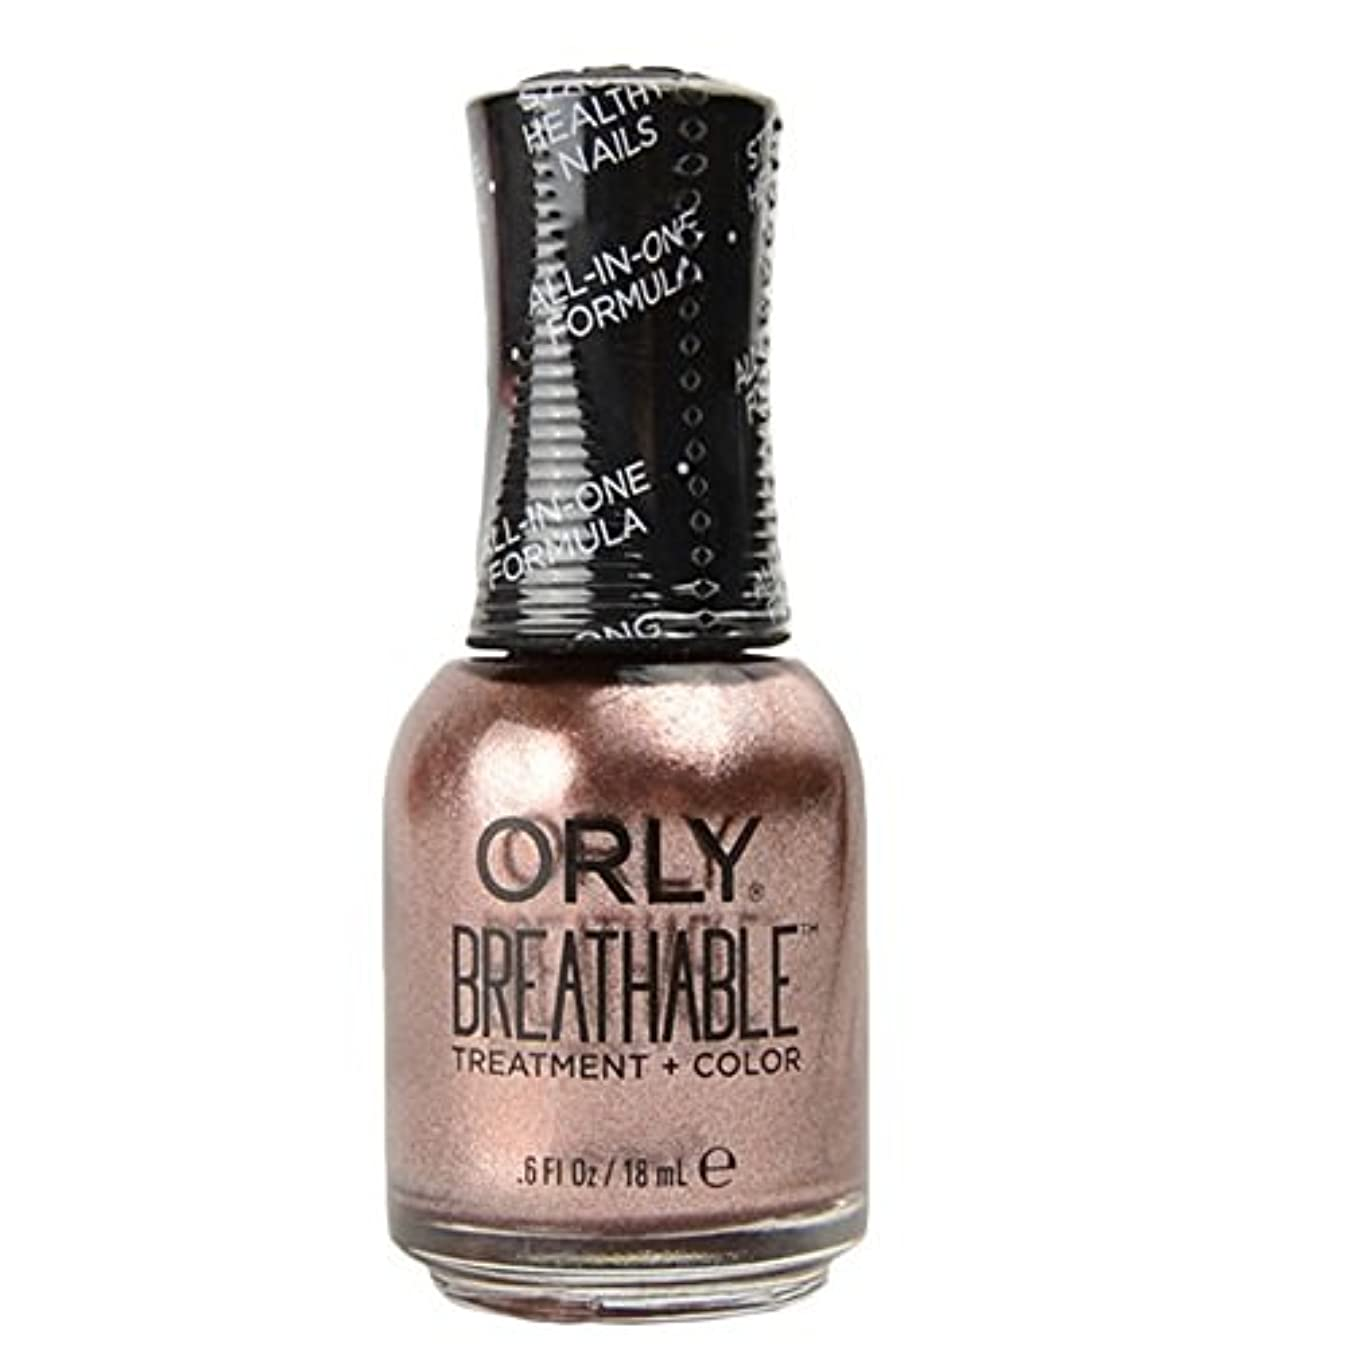 不名誉な面宙返りOrly Breathable Treatment + Color Nail Lacquer - Fairy Godmother - 0.6oz / 18ml